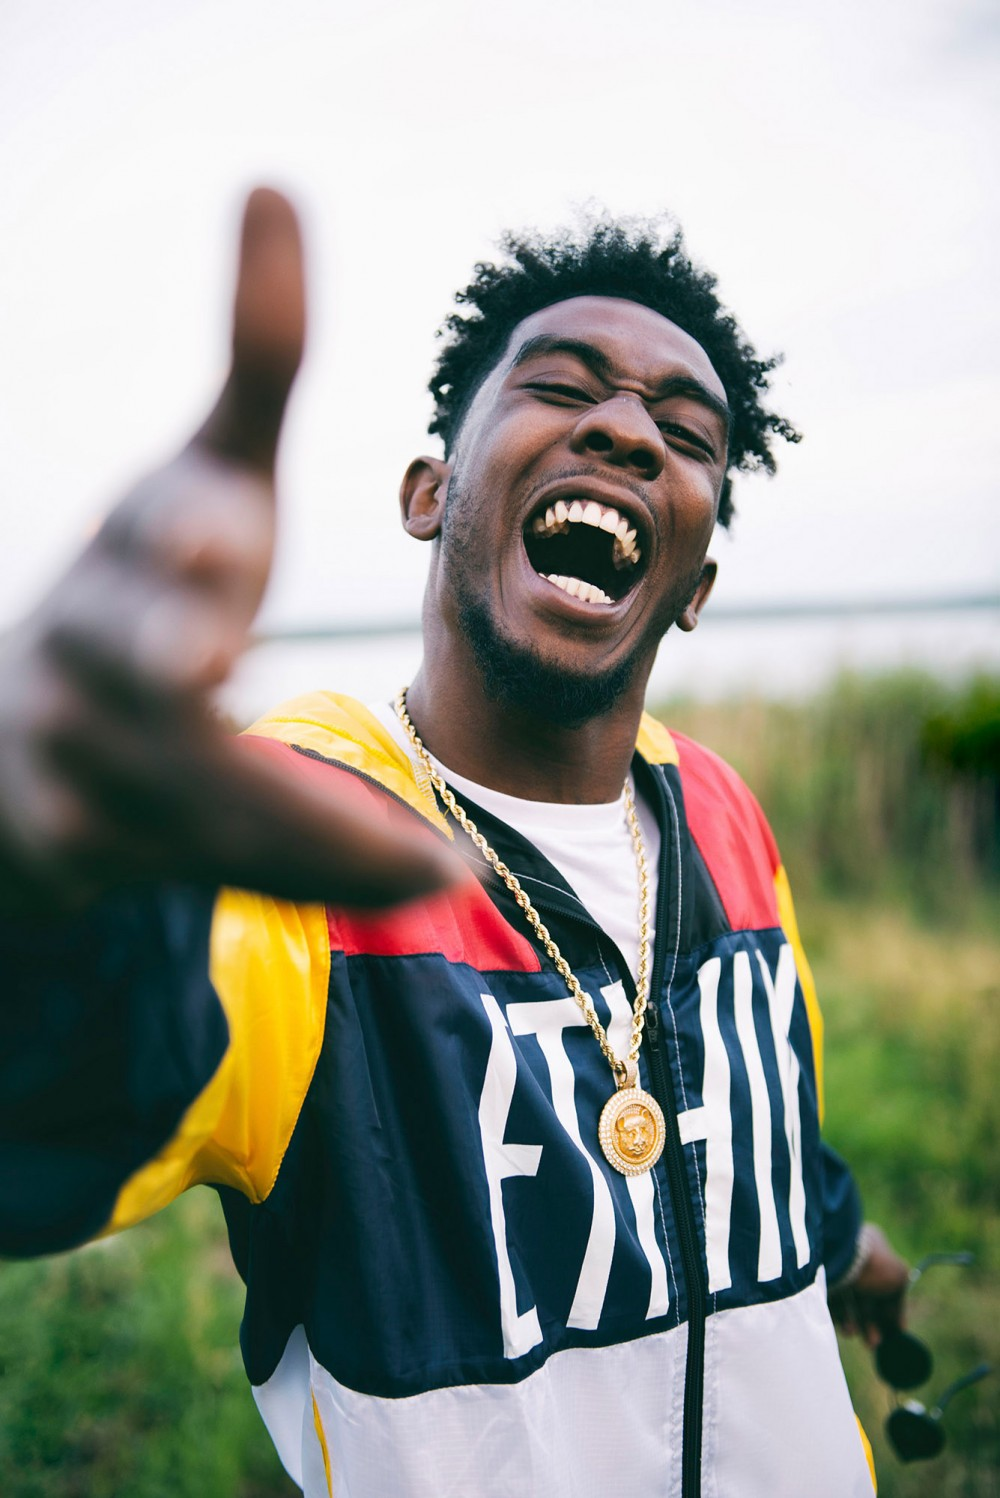 Desiigner by Emil Levy represented by stoever artists